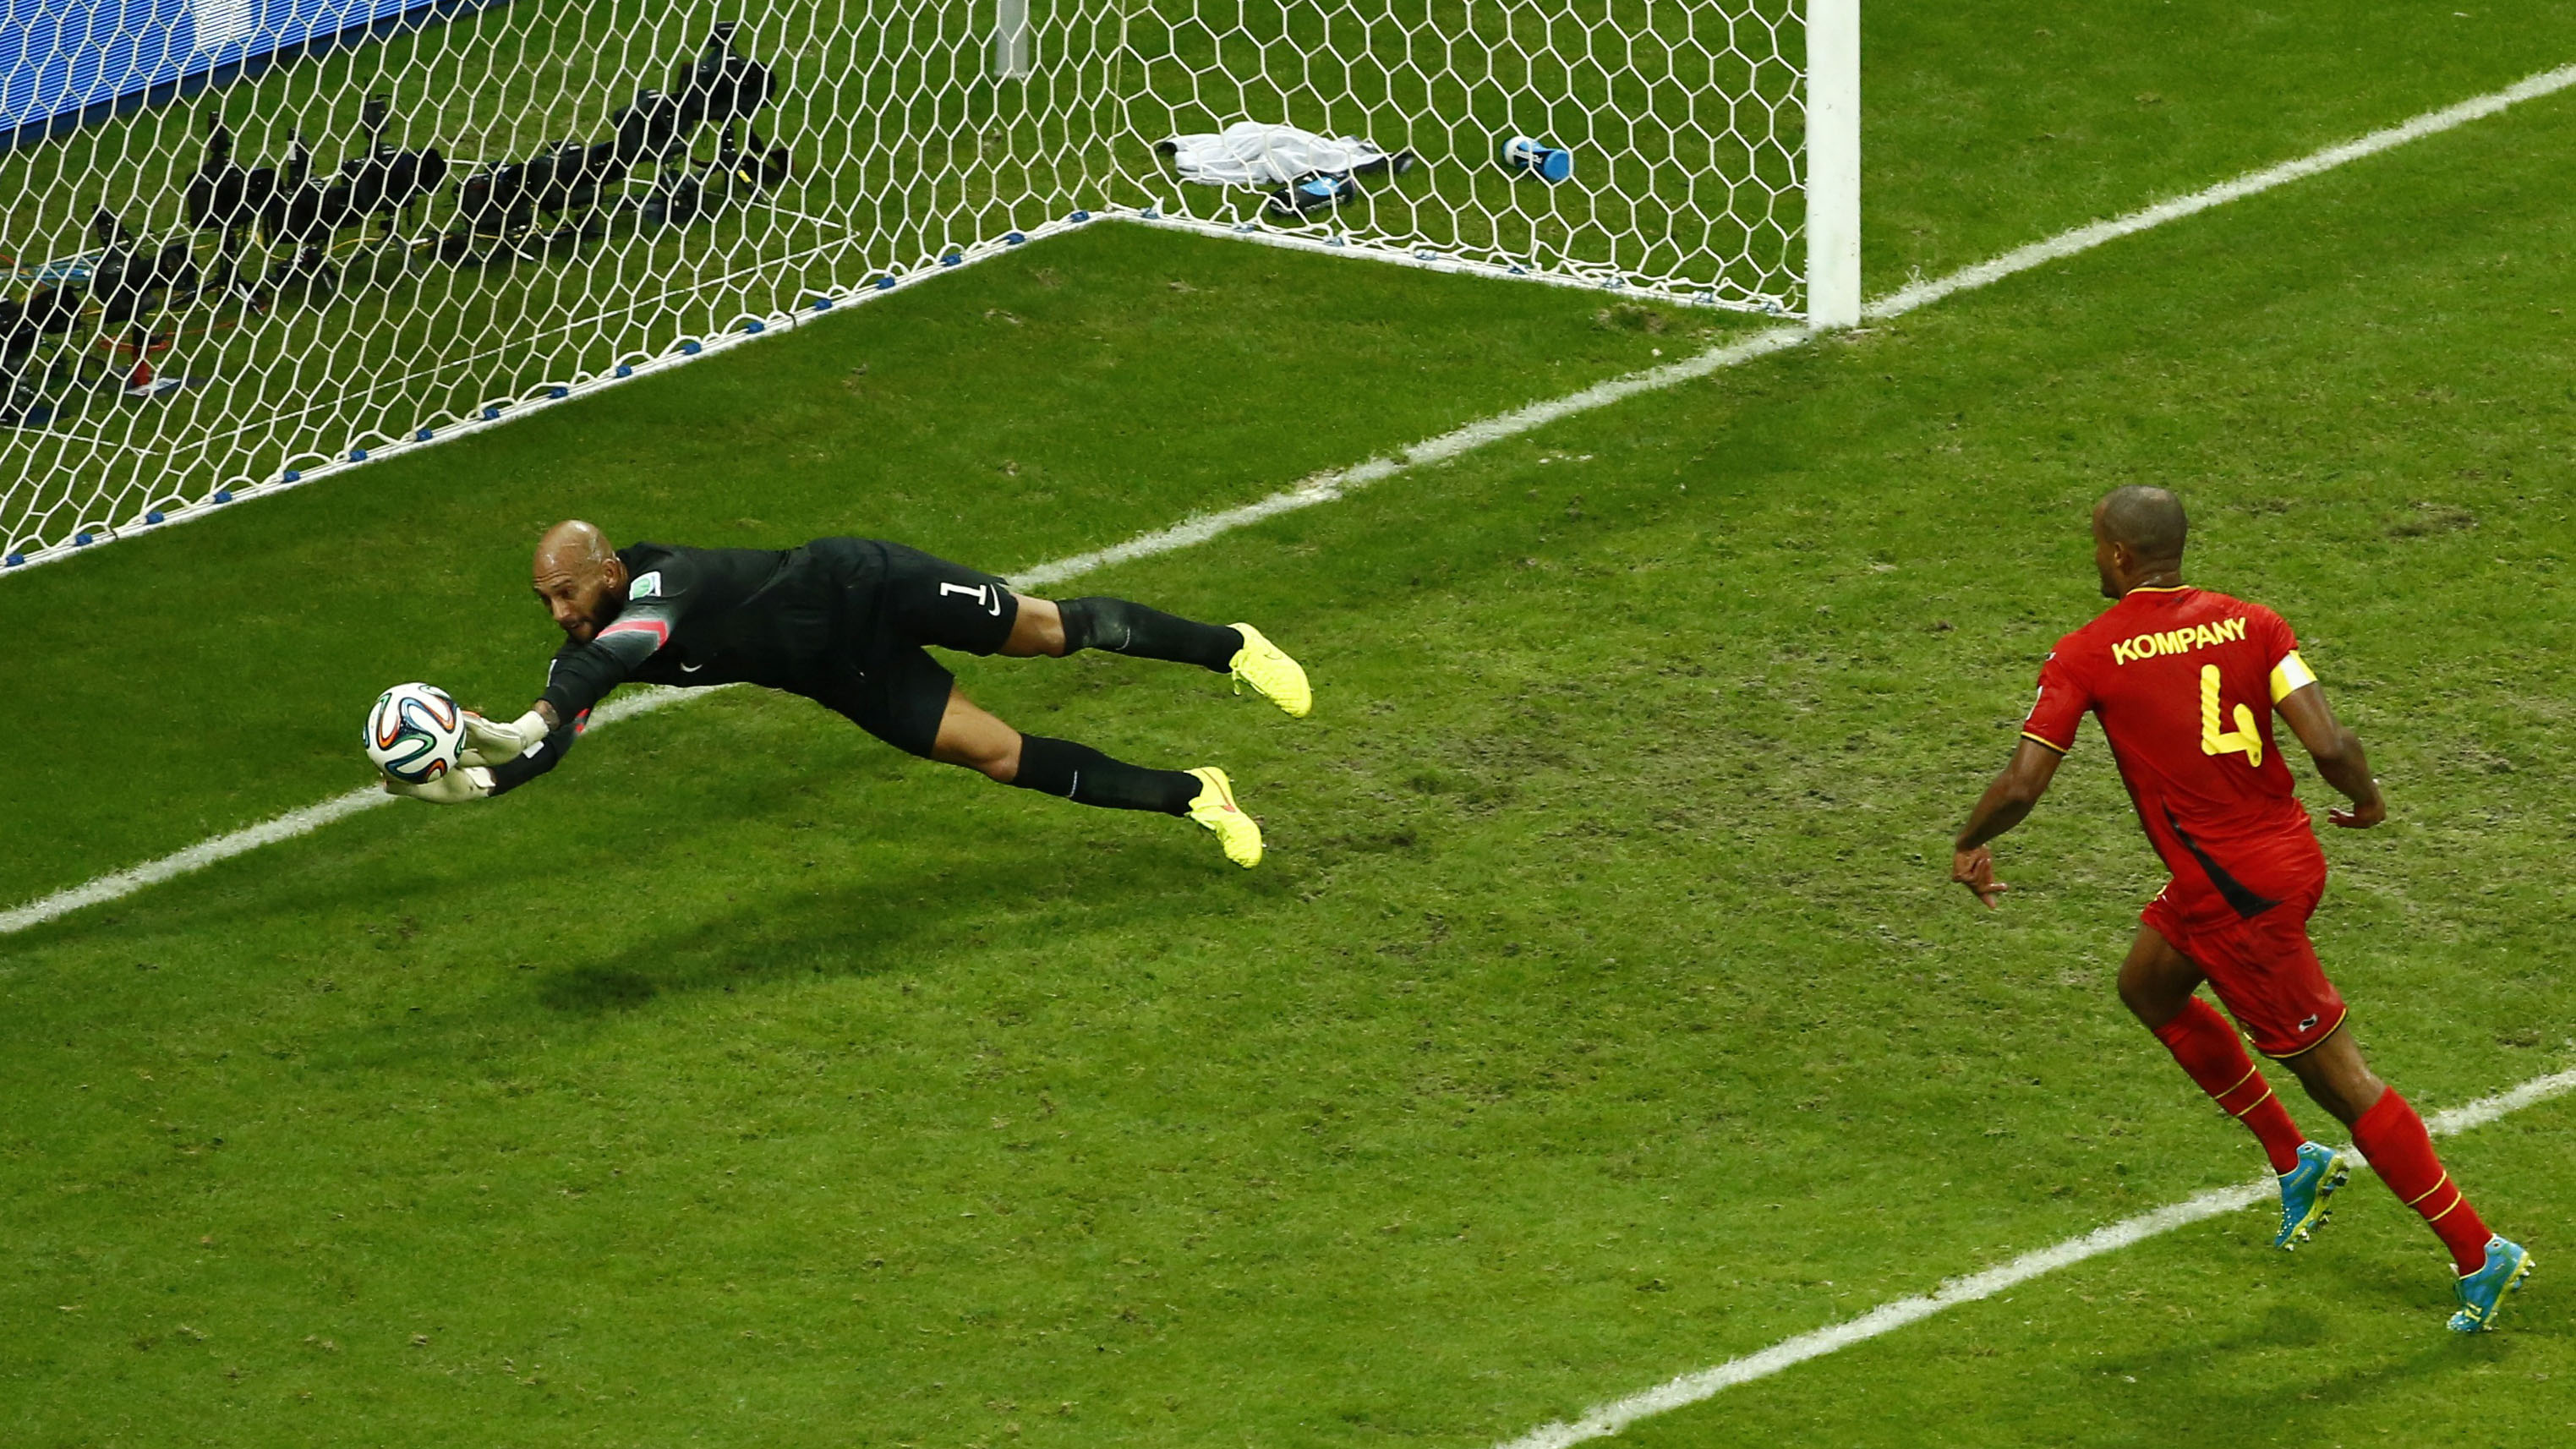 Goalkeeper Tim Howard of the U.S. saves a shot during their 2014 World Cup round of 16 game against Belgium at the Fonte Nova arena in Salvador July 1, 2014.